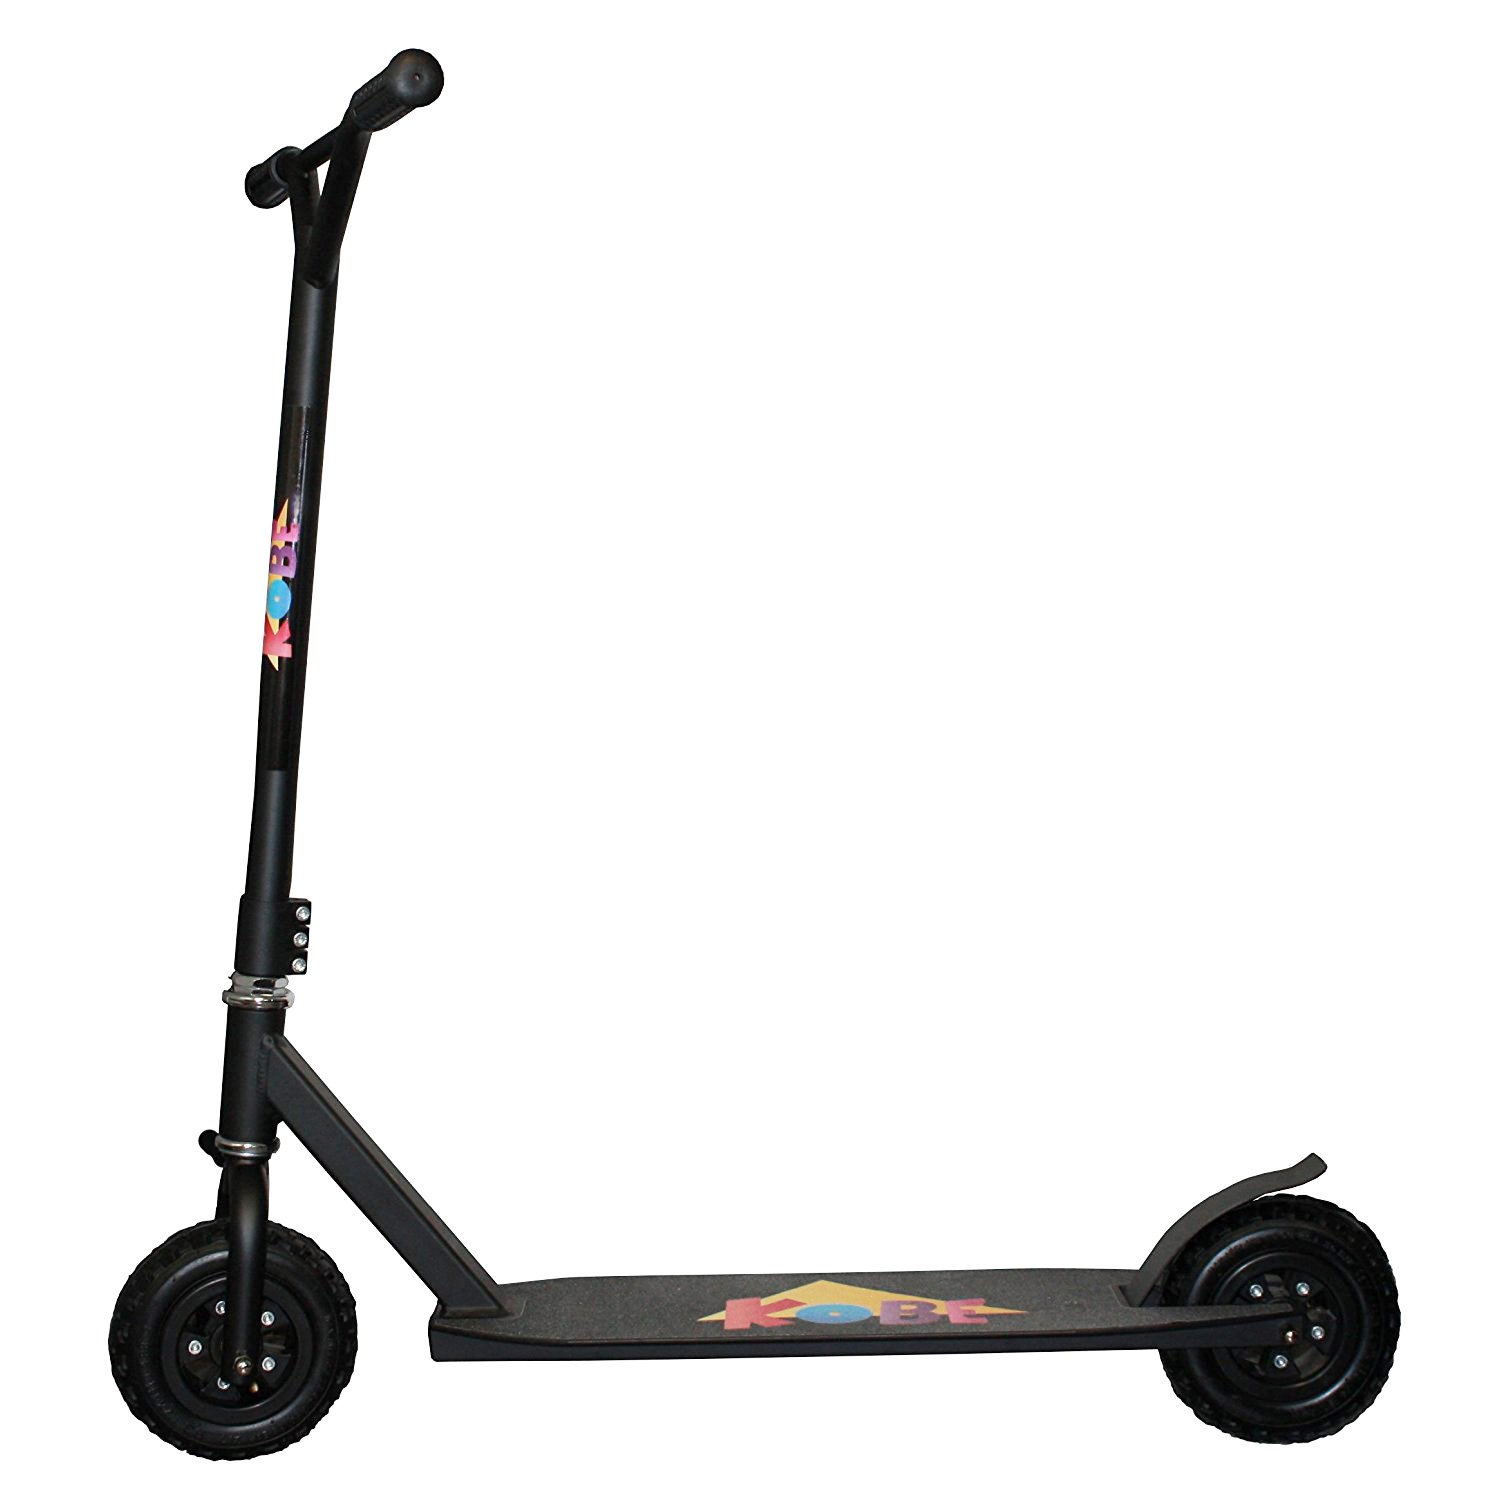 KOBE 360 Dirt Off-Road Scooter with Reinforced Steel & Curved BMX T-Bar, Black